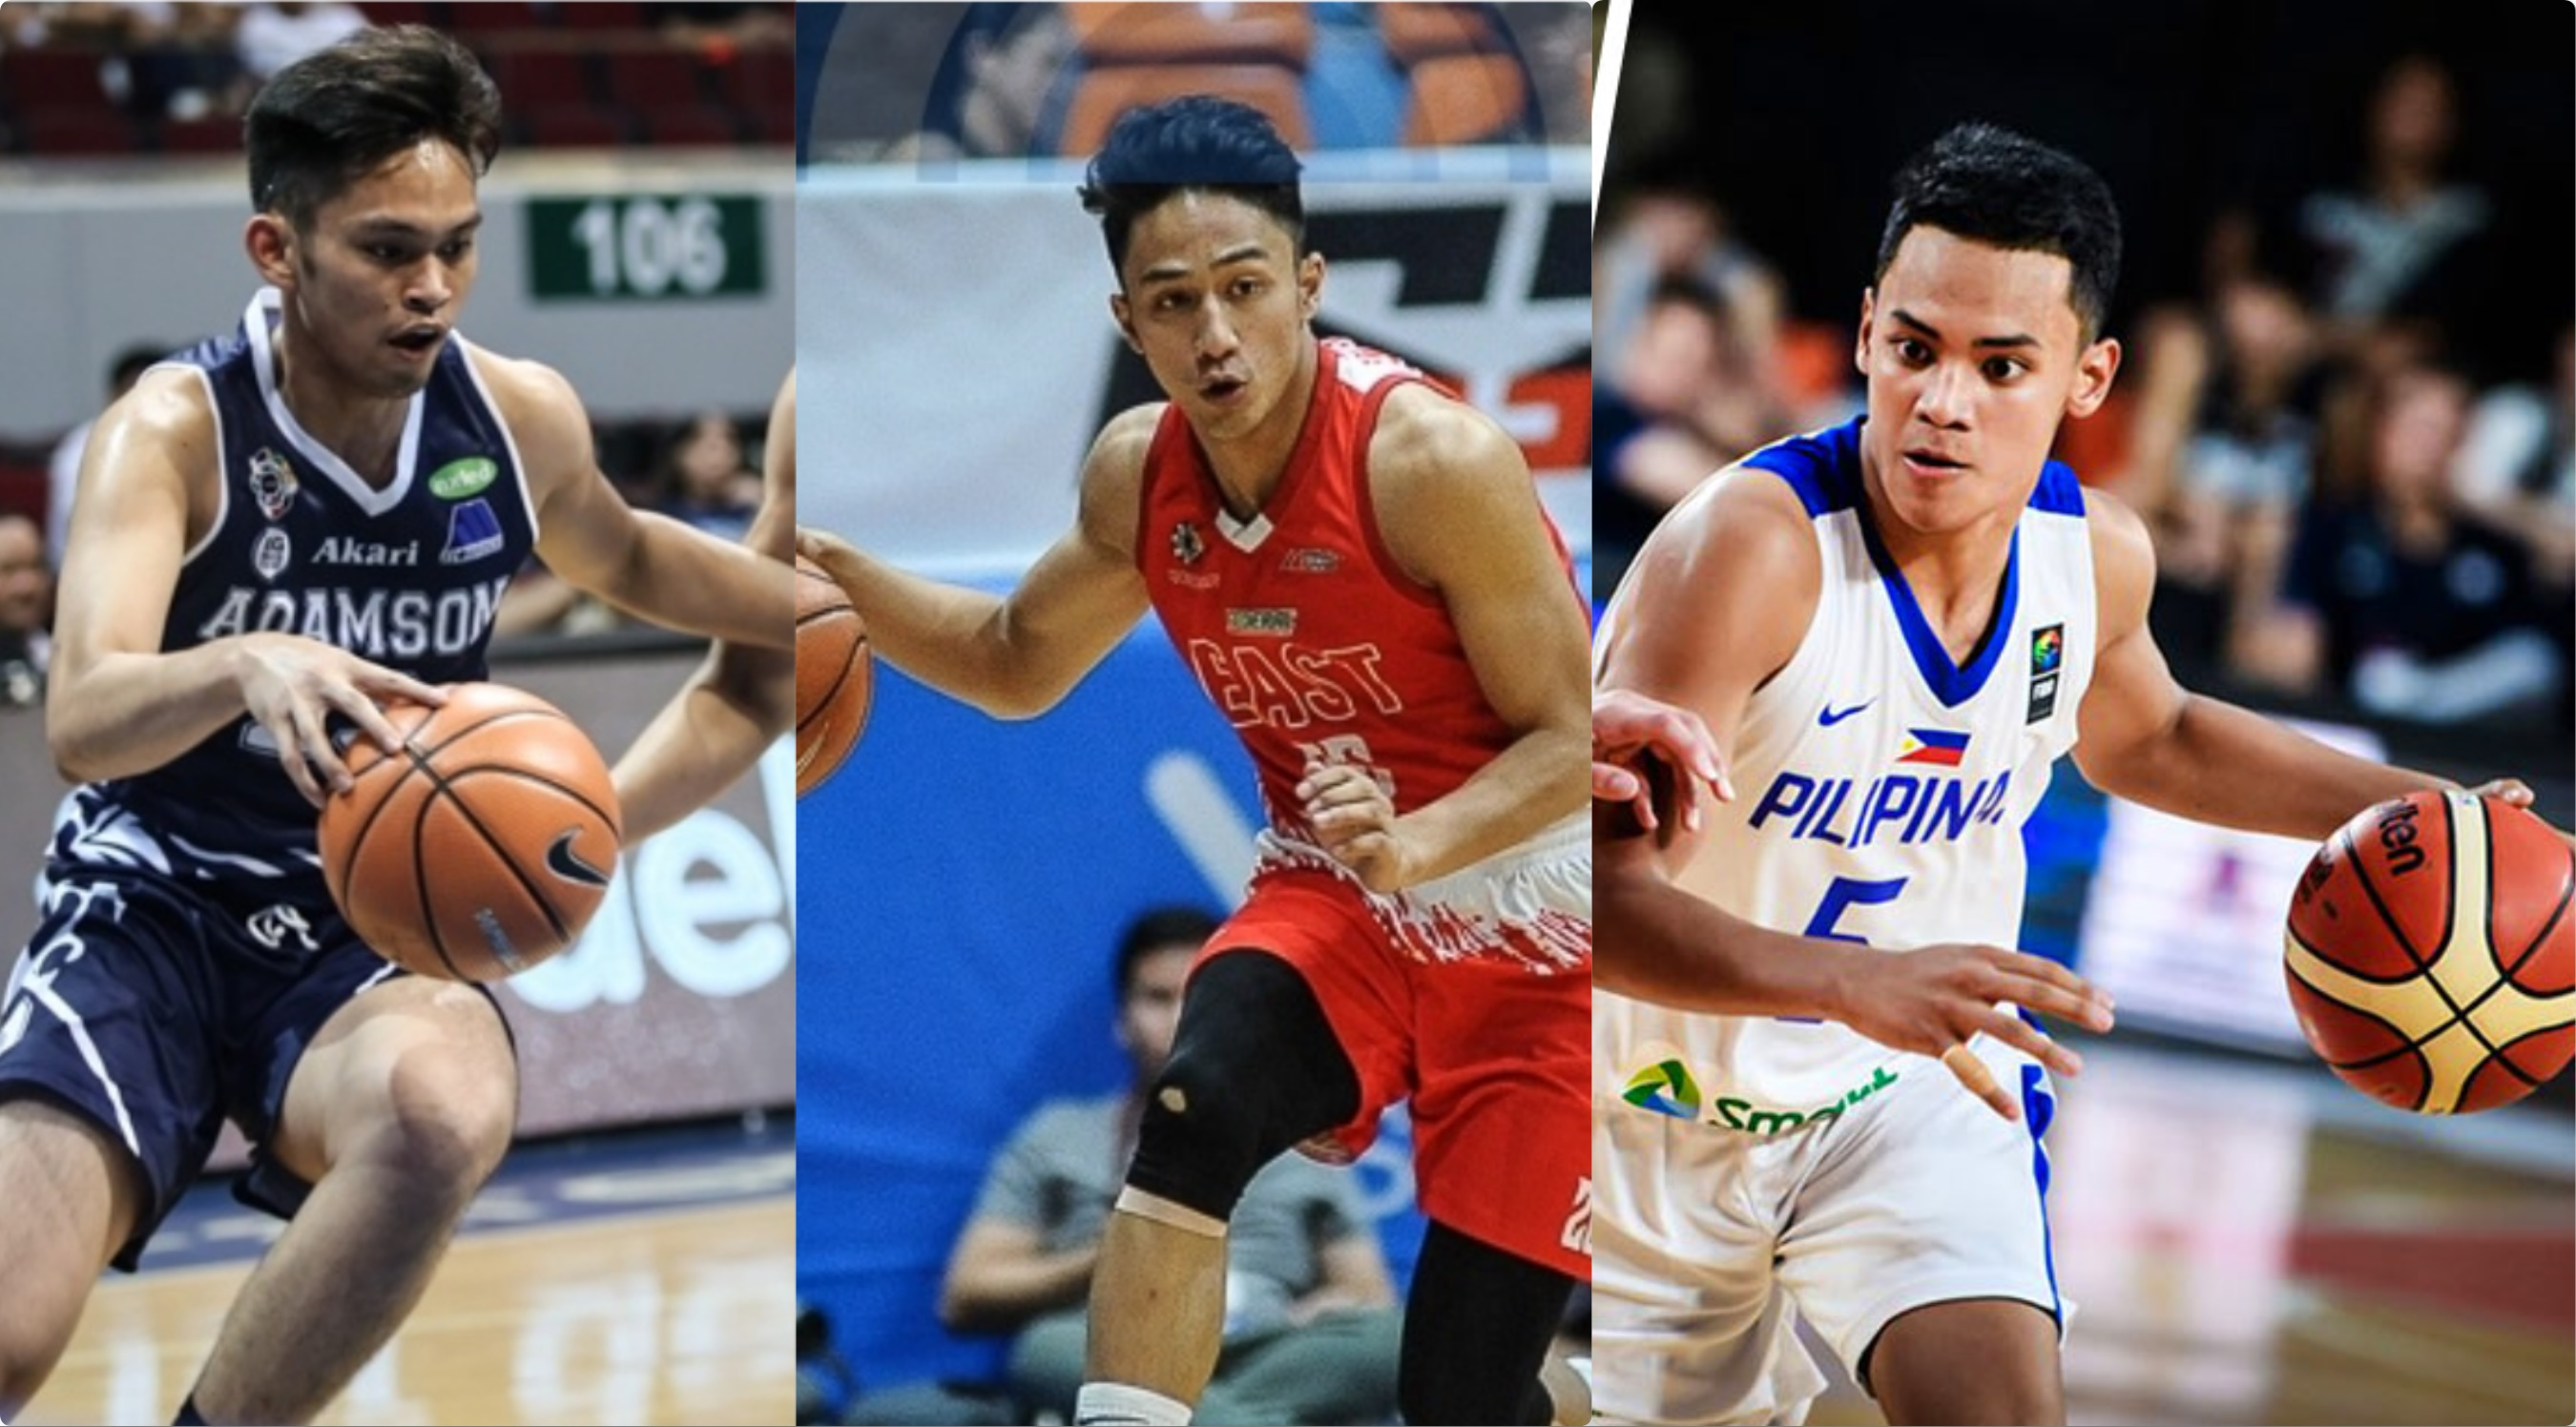 Fil-Italian youths show love for Pinoy-style basketball - Good News  Pilipinas